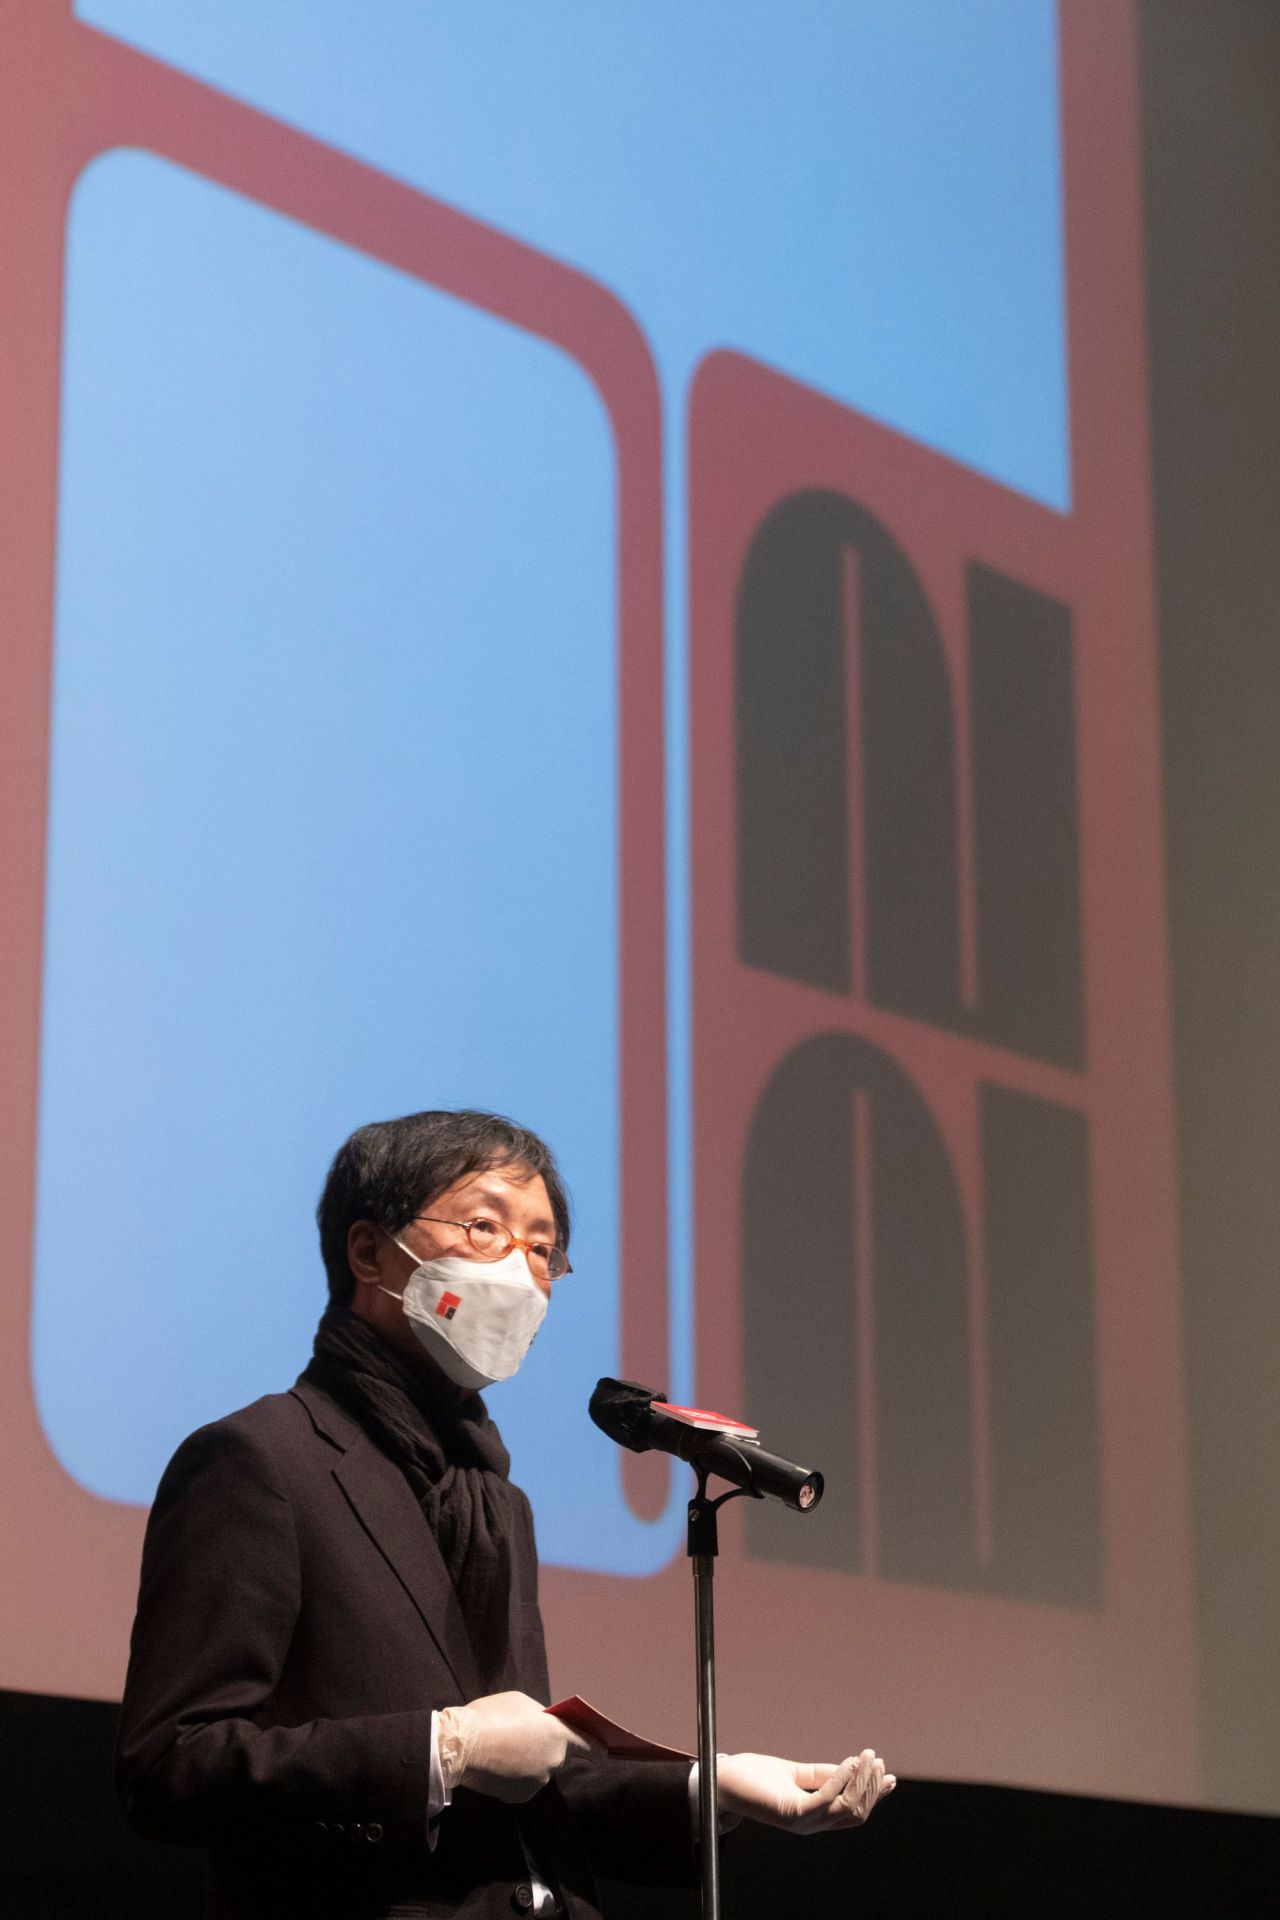 """Director of the 22nd Jeonju International Film Festival Lee Joon-dong speaks before a showing of the closing movie """"Josep,"""" directed by Aurel on Saturday. (Jeonju IFF)"""